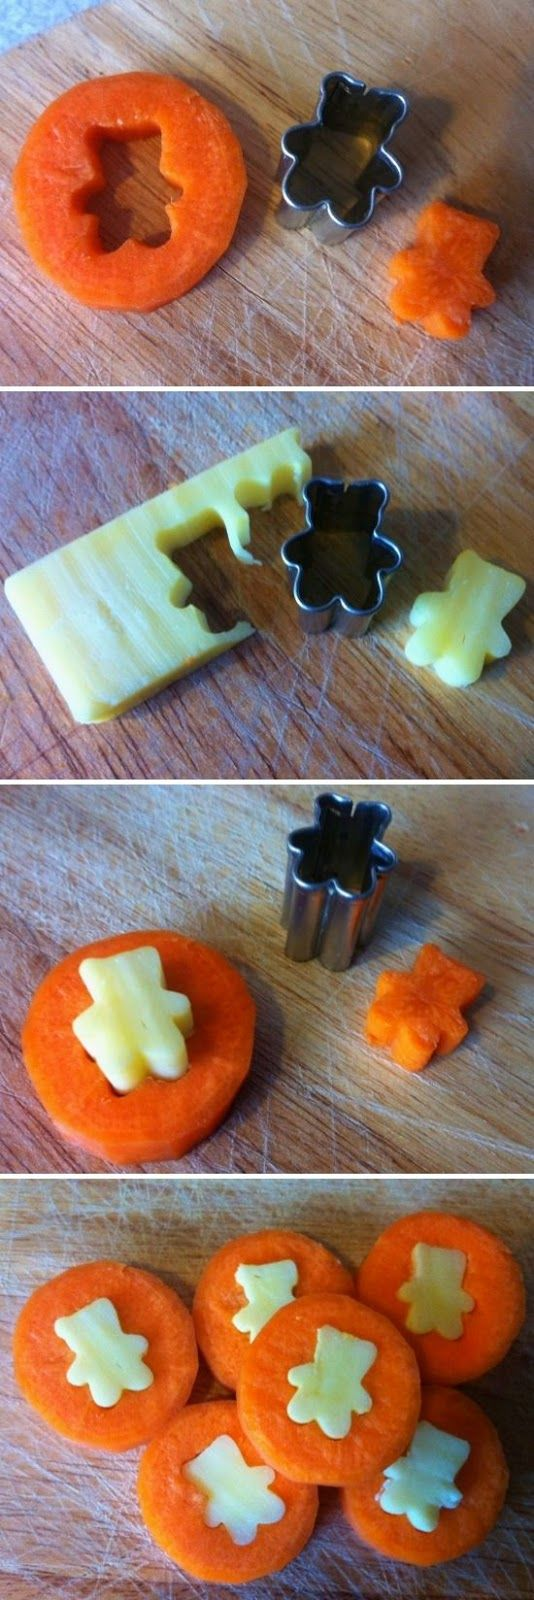 Cheese & Carrot Coins